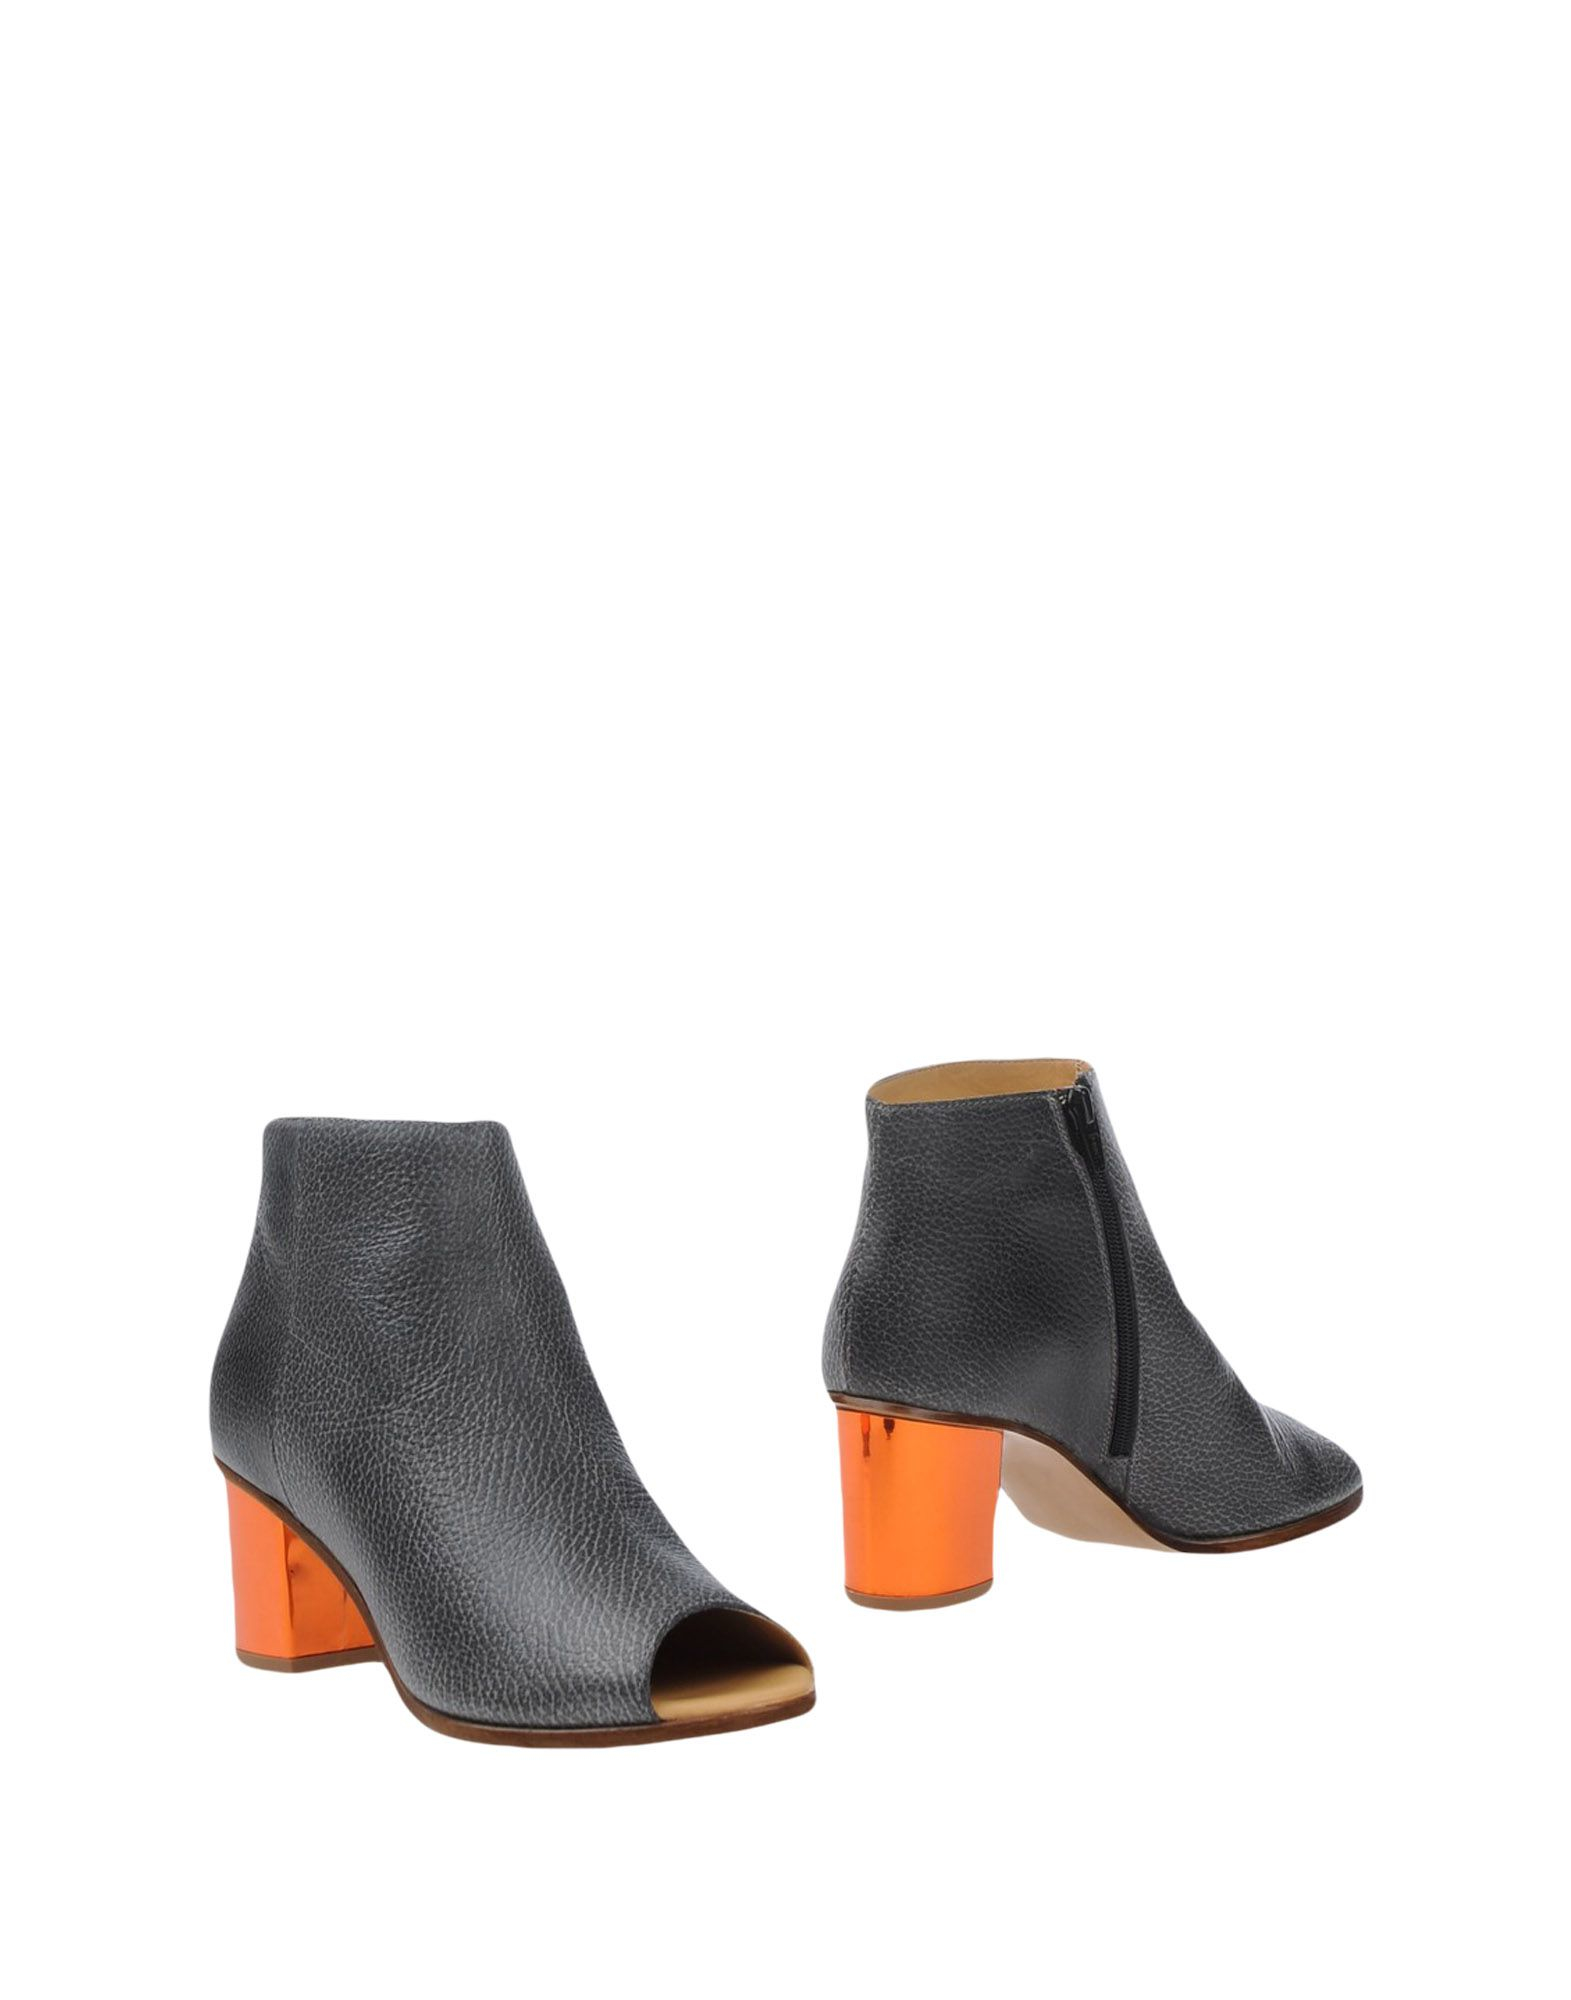 Mm6 by maison martin margiela ankle boots in gray lead for Mm6 maison martin margiela